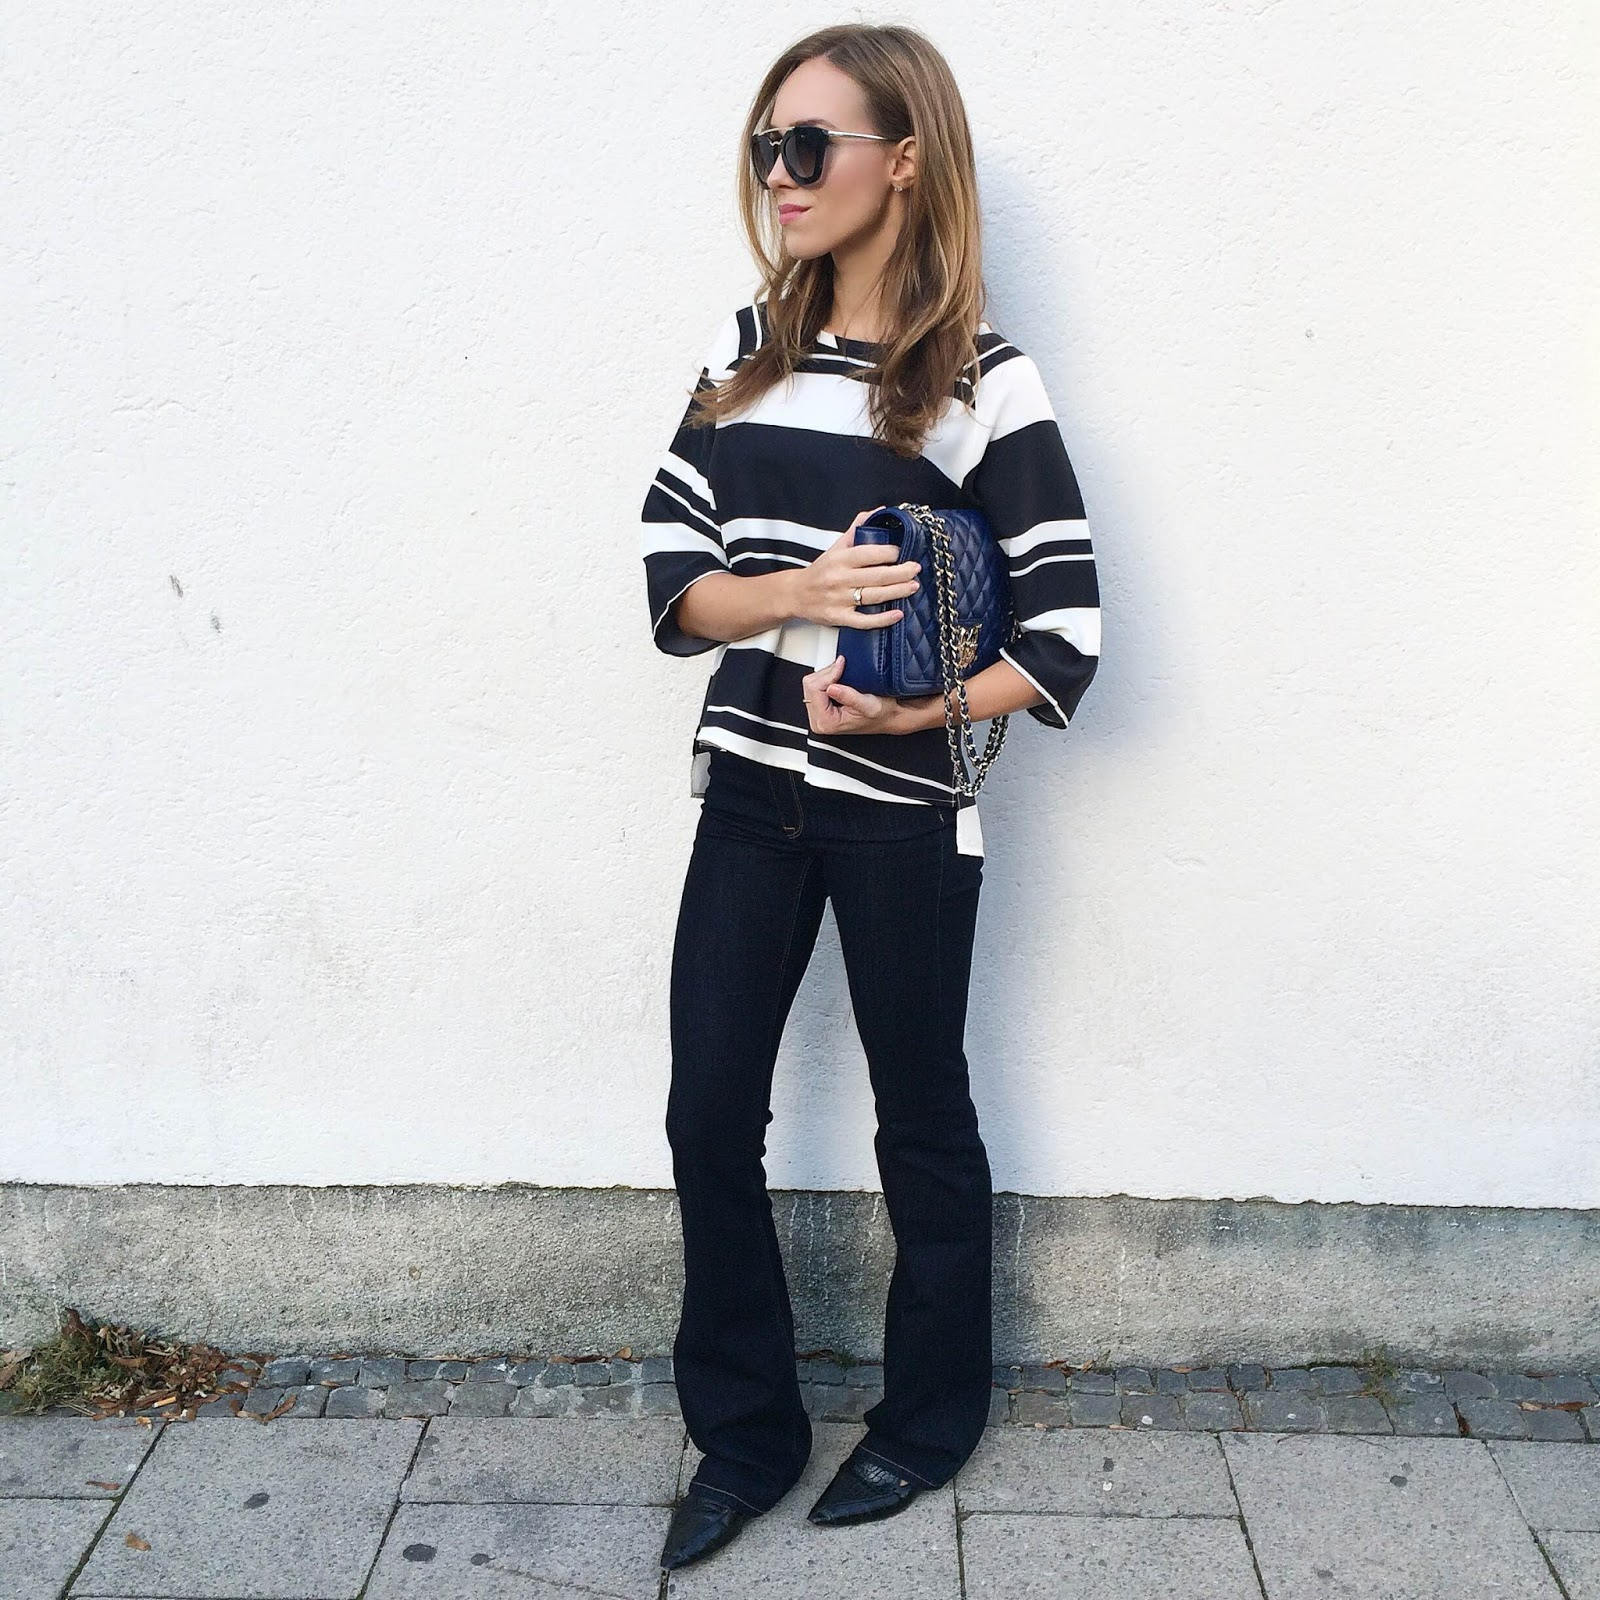 kristjaana mere striped top flare denim jeans pointed toe flats outfit